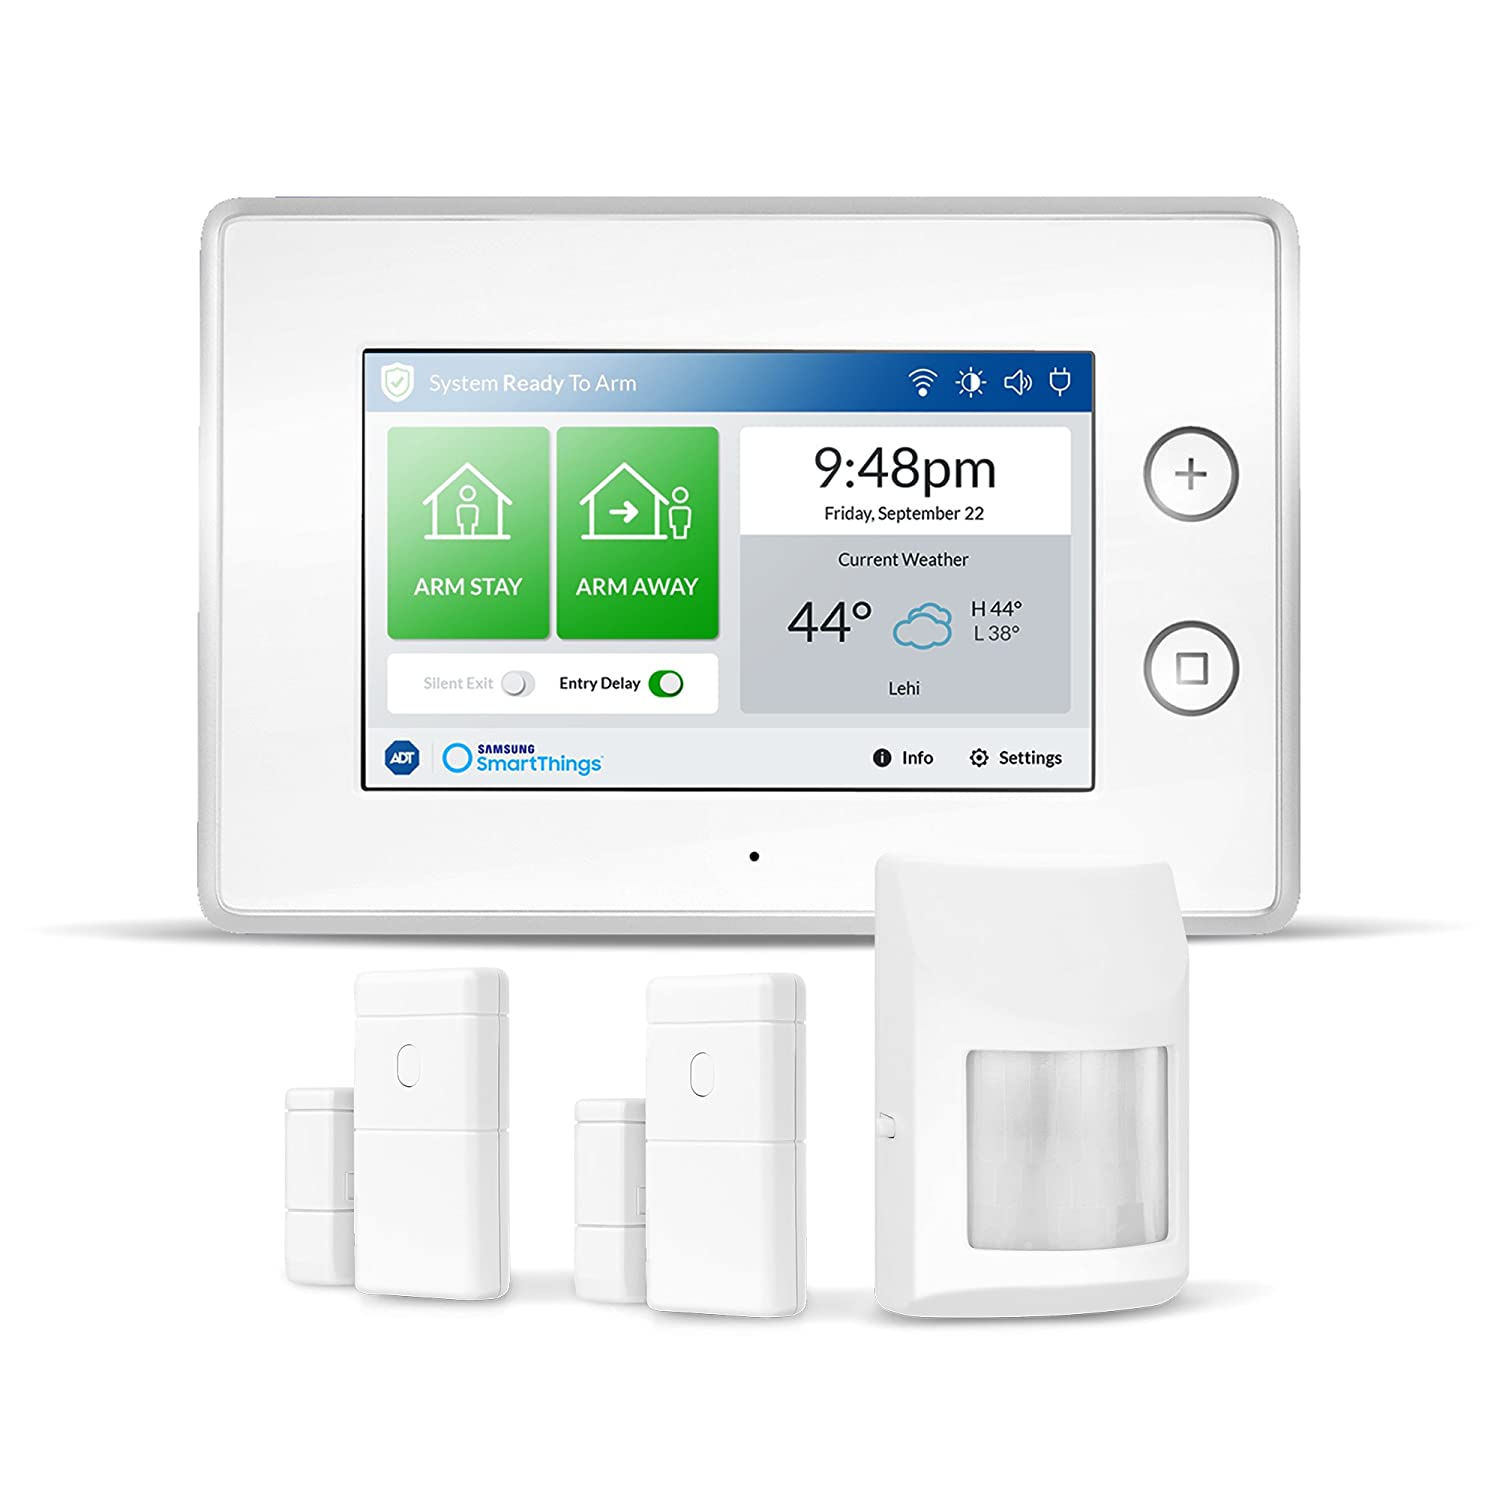 Samsung SmartThings ADT Wireless Home Security Starter Kit with DIY Smart Alarm System Hub Door and Window Sensors and Motion Detector Alexa Compatible Zigbee Z Wave IP Network Protocols